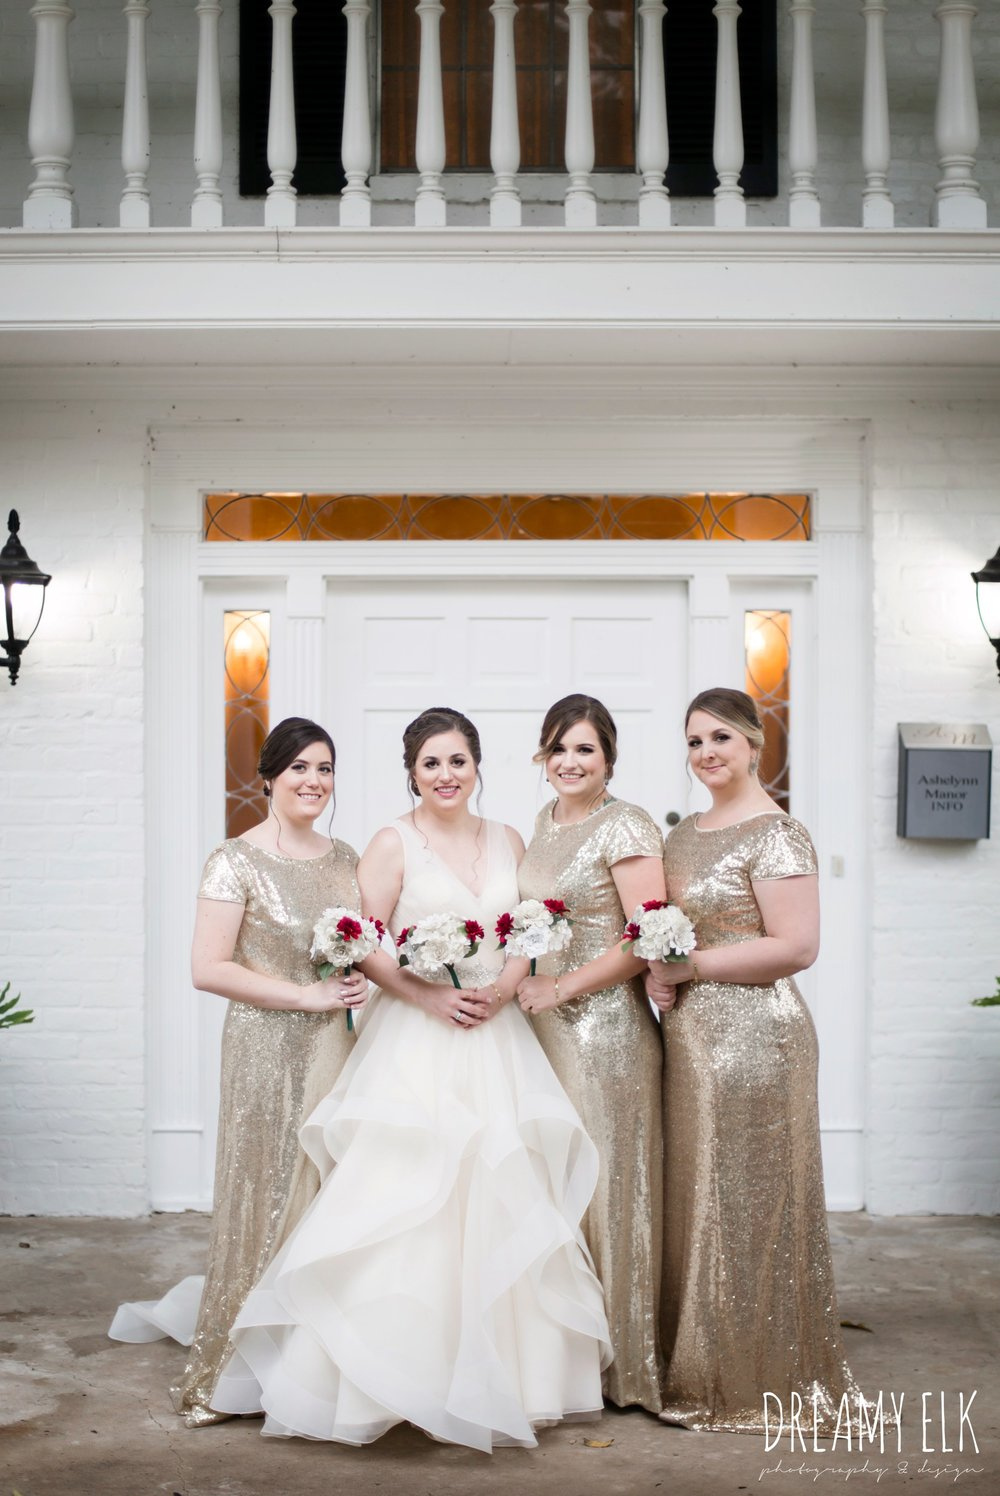 gold sequin floor length cowl back bridesmaid dress, bride, eddy k ballgown wedding dress with ruffles, paper flower wedding bouquet, wedding hair updo no veil, fall wedding, gold and navy wedding photo, ashelynn manor, austin texas wedding photographer, dreamy elk photography and design, emily ross